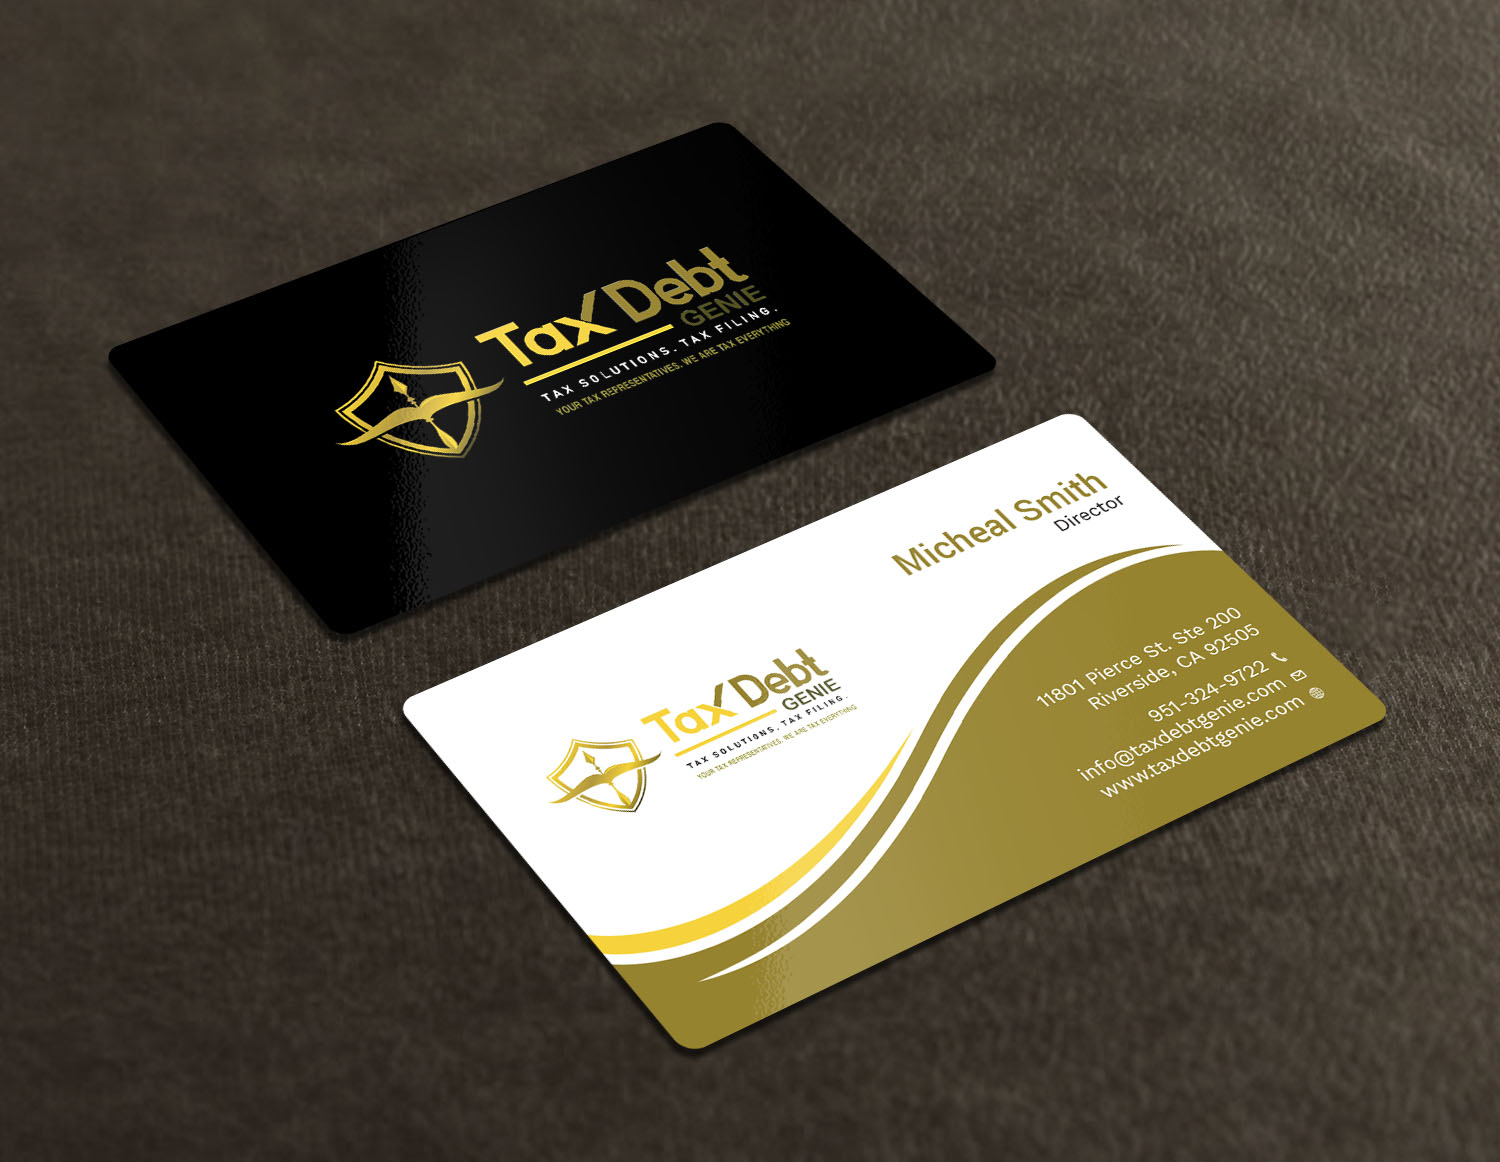 Upmarket elegant business card design for a company by avanger000 business card design by avanger000 for this project design 18398930 reheart Choice Image